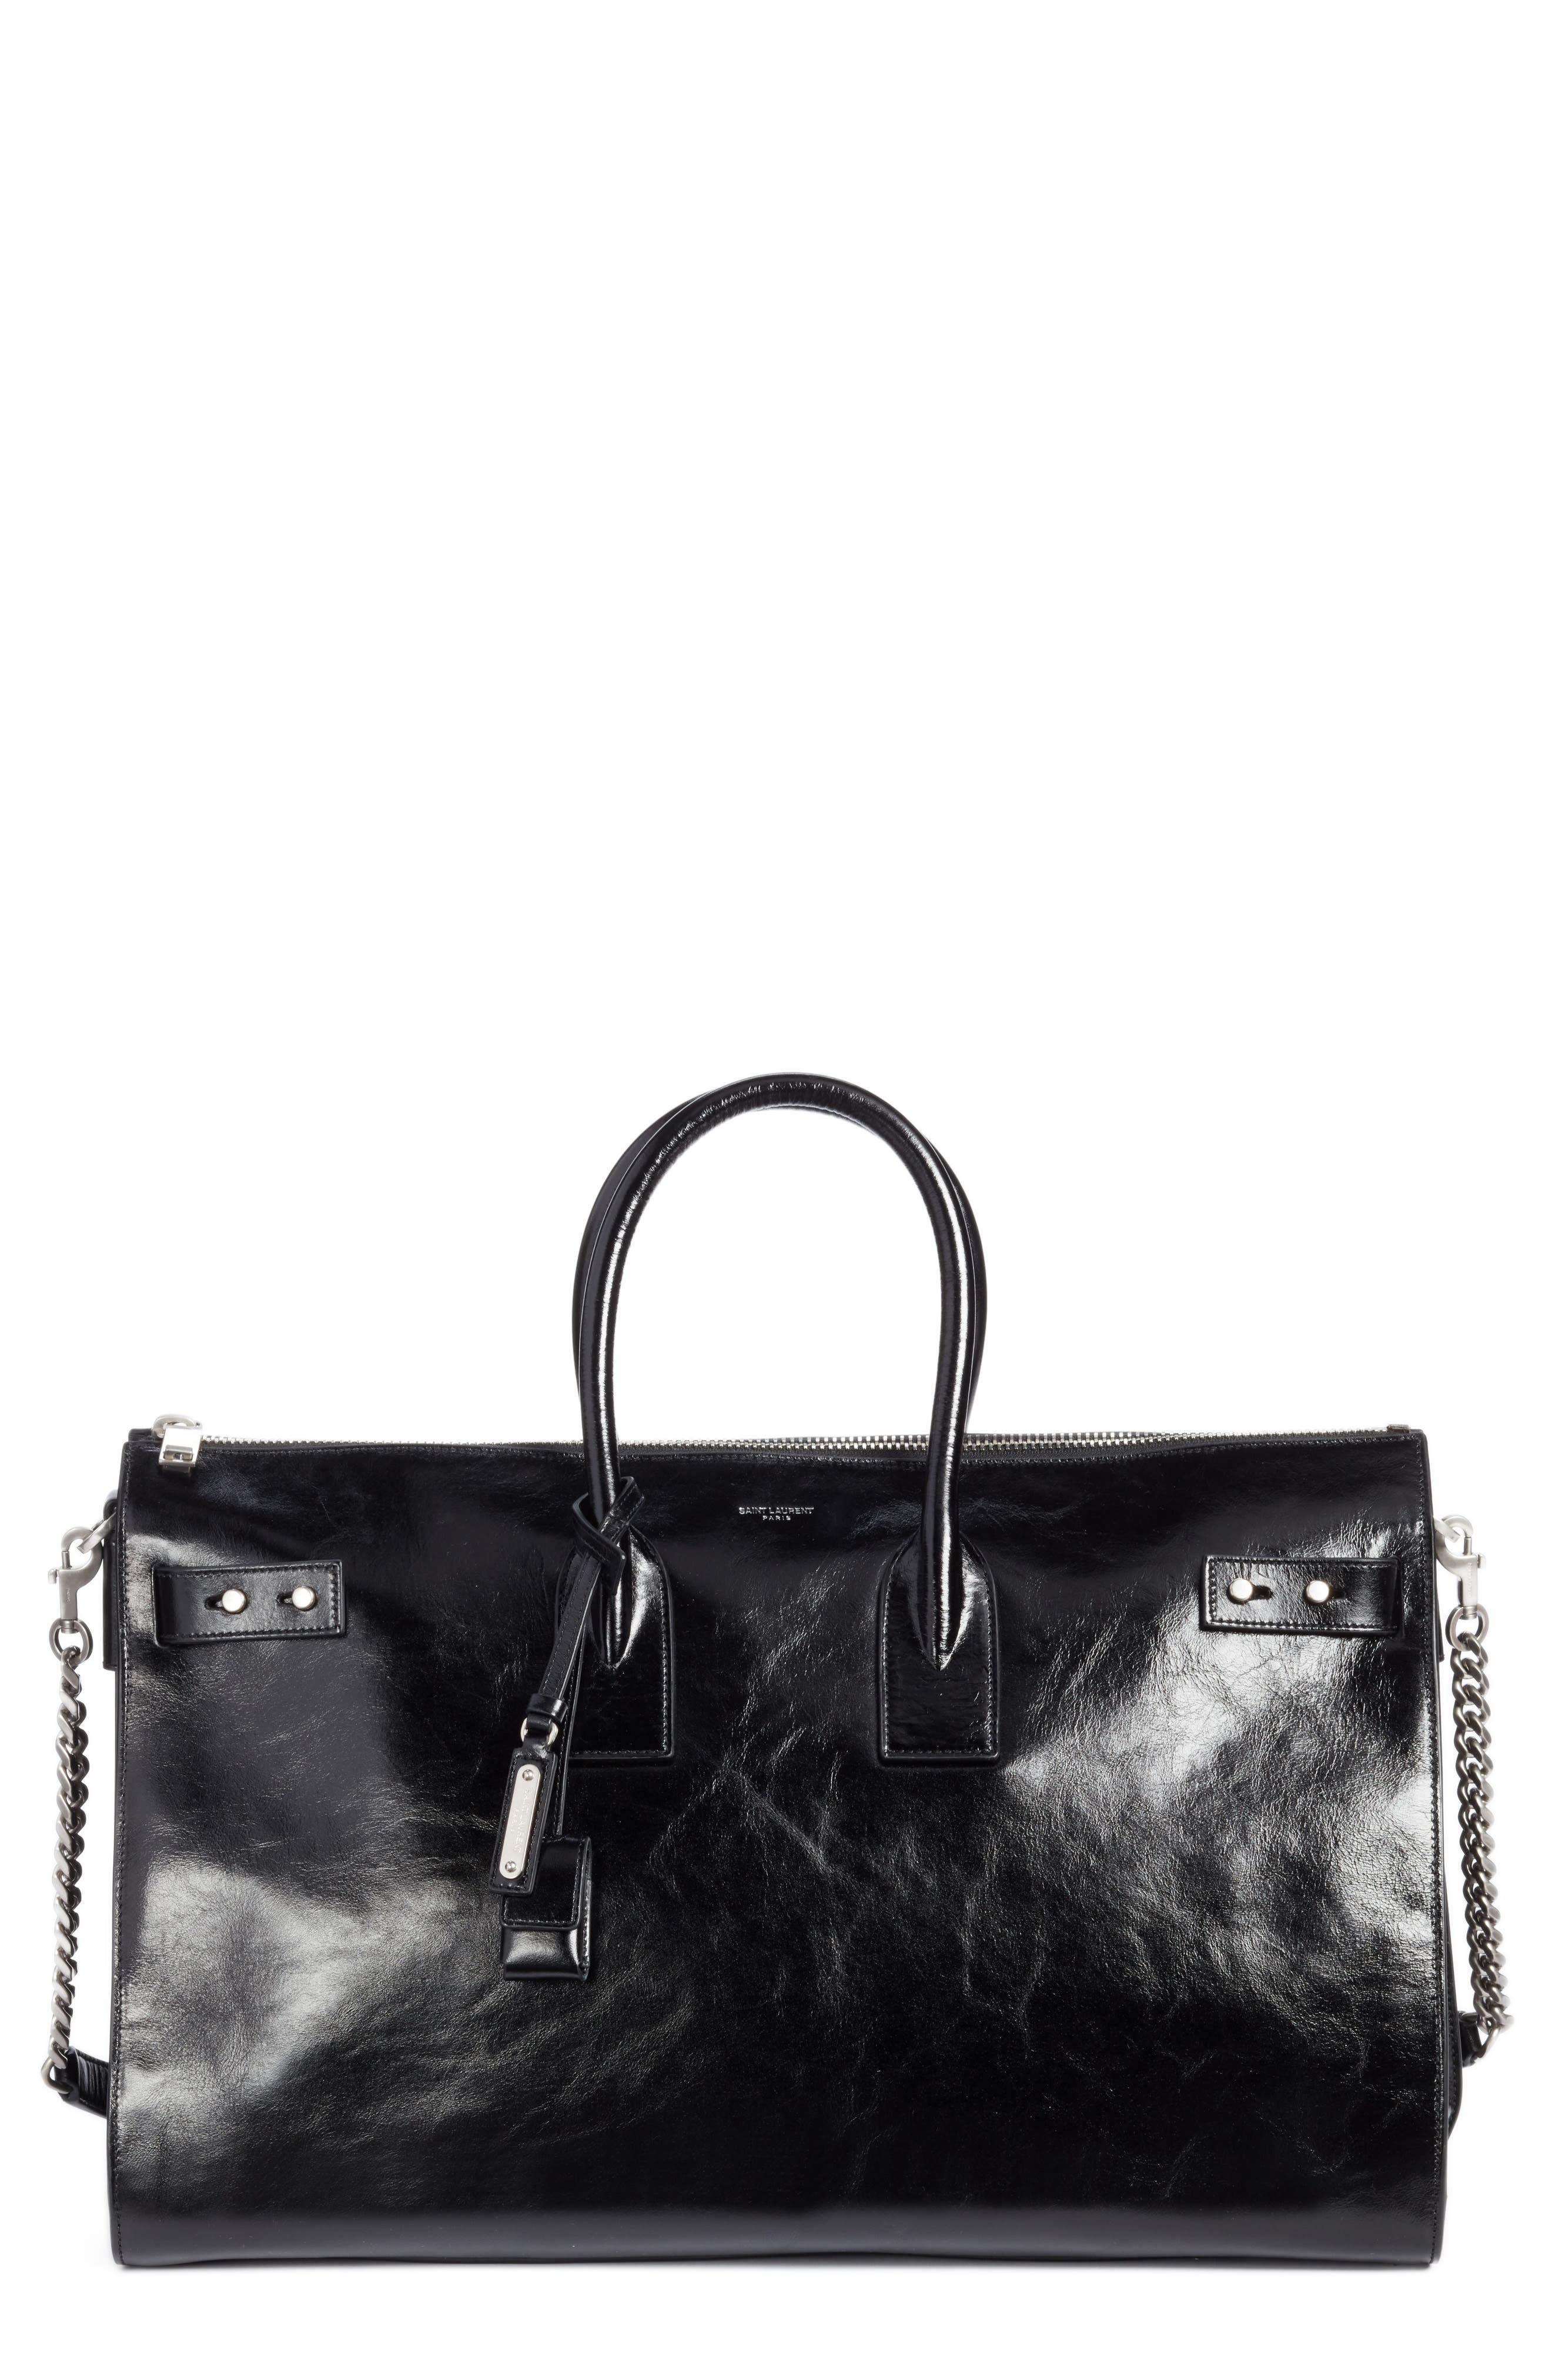 SAINT LAURENT Sac de Jour Glacé Moroder Leather Duffel